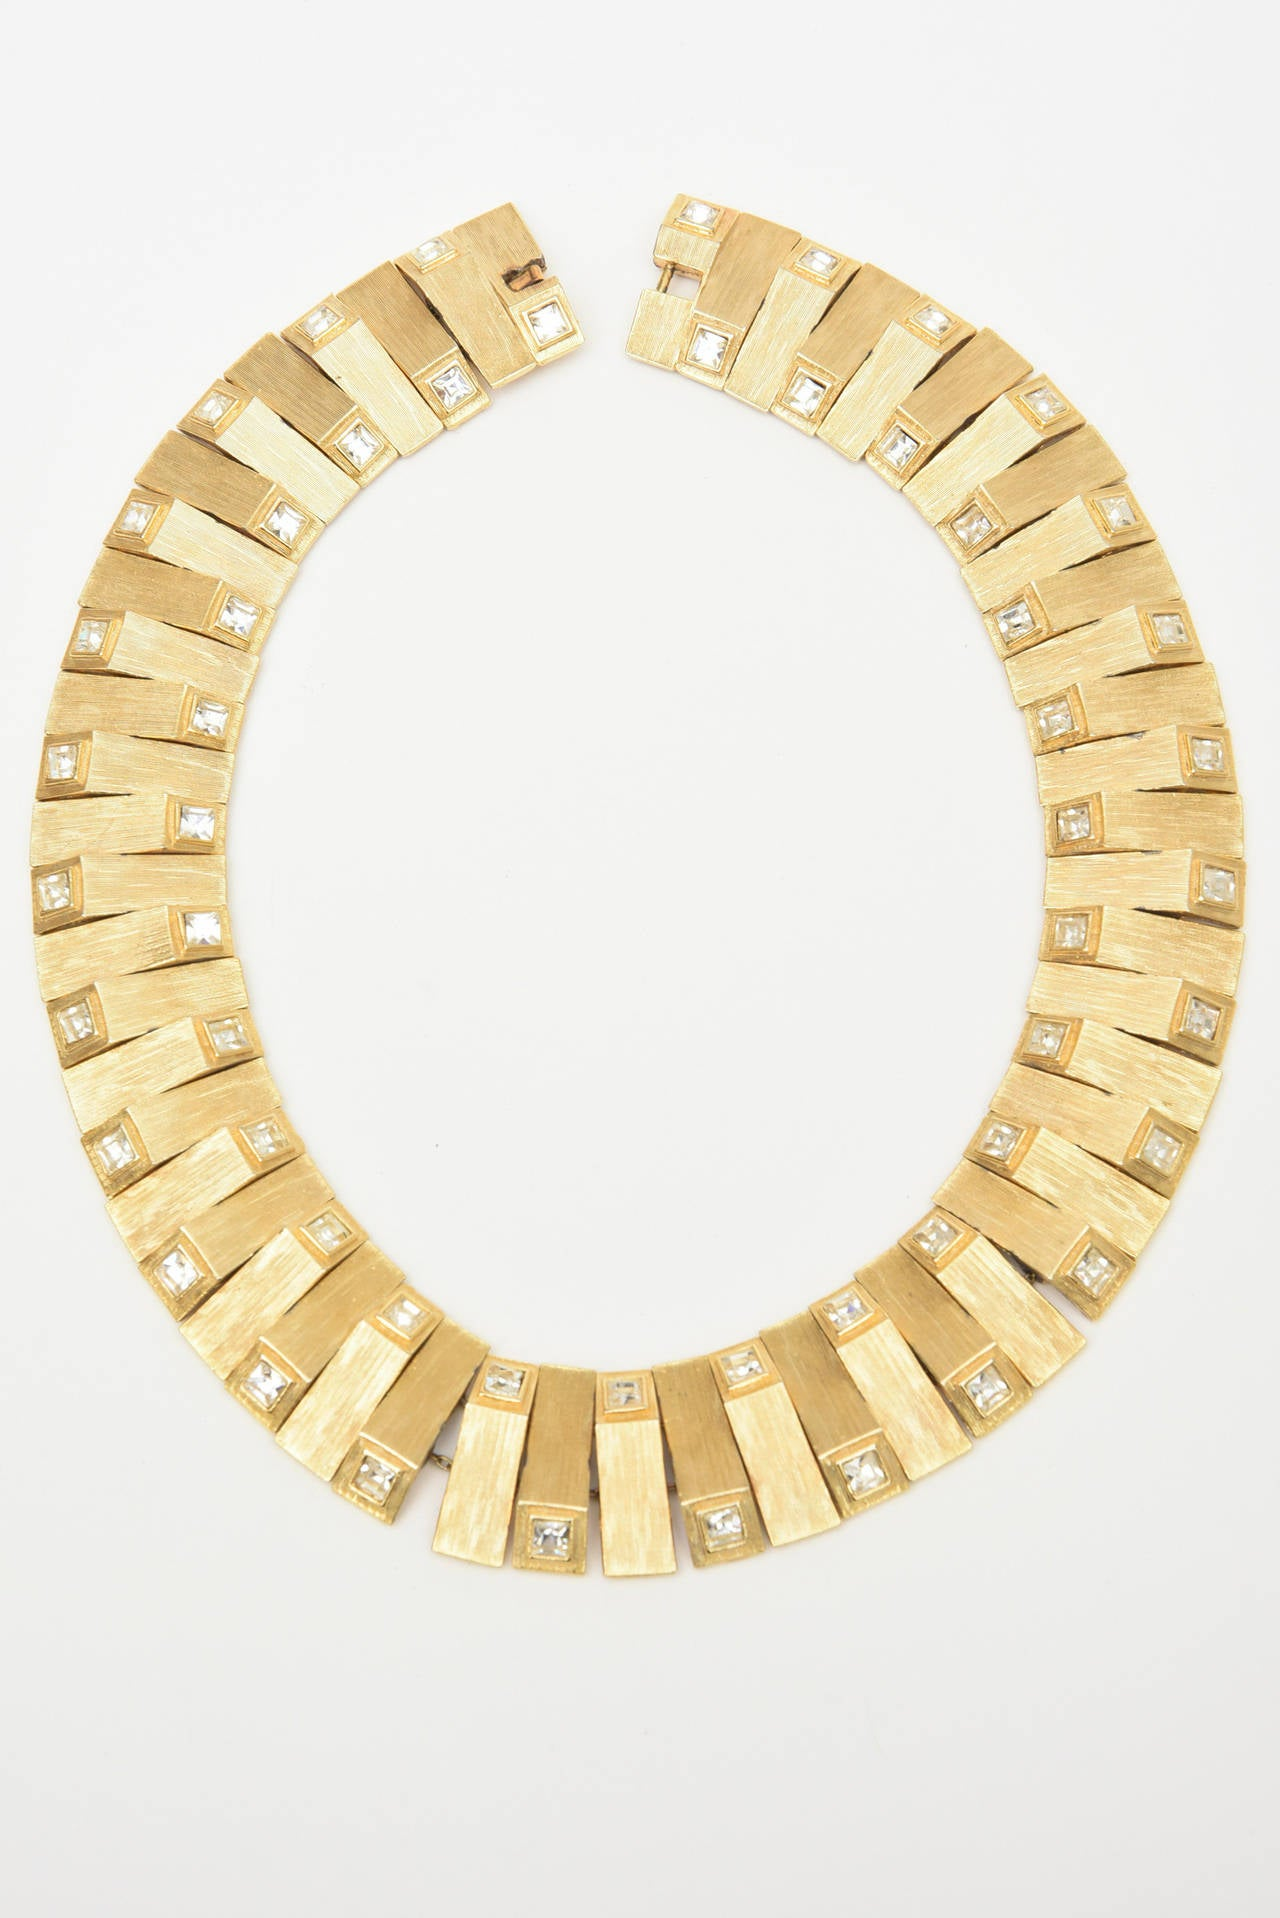 Women's Satin Brushed Gold Plated Metal with Rhinstone Reticulated Collar Necklace For Sale